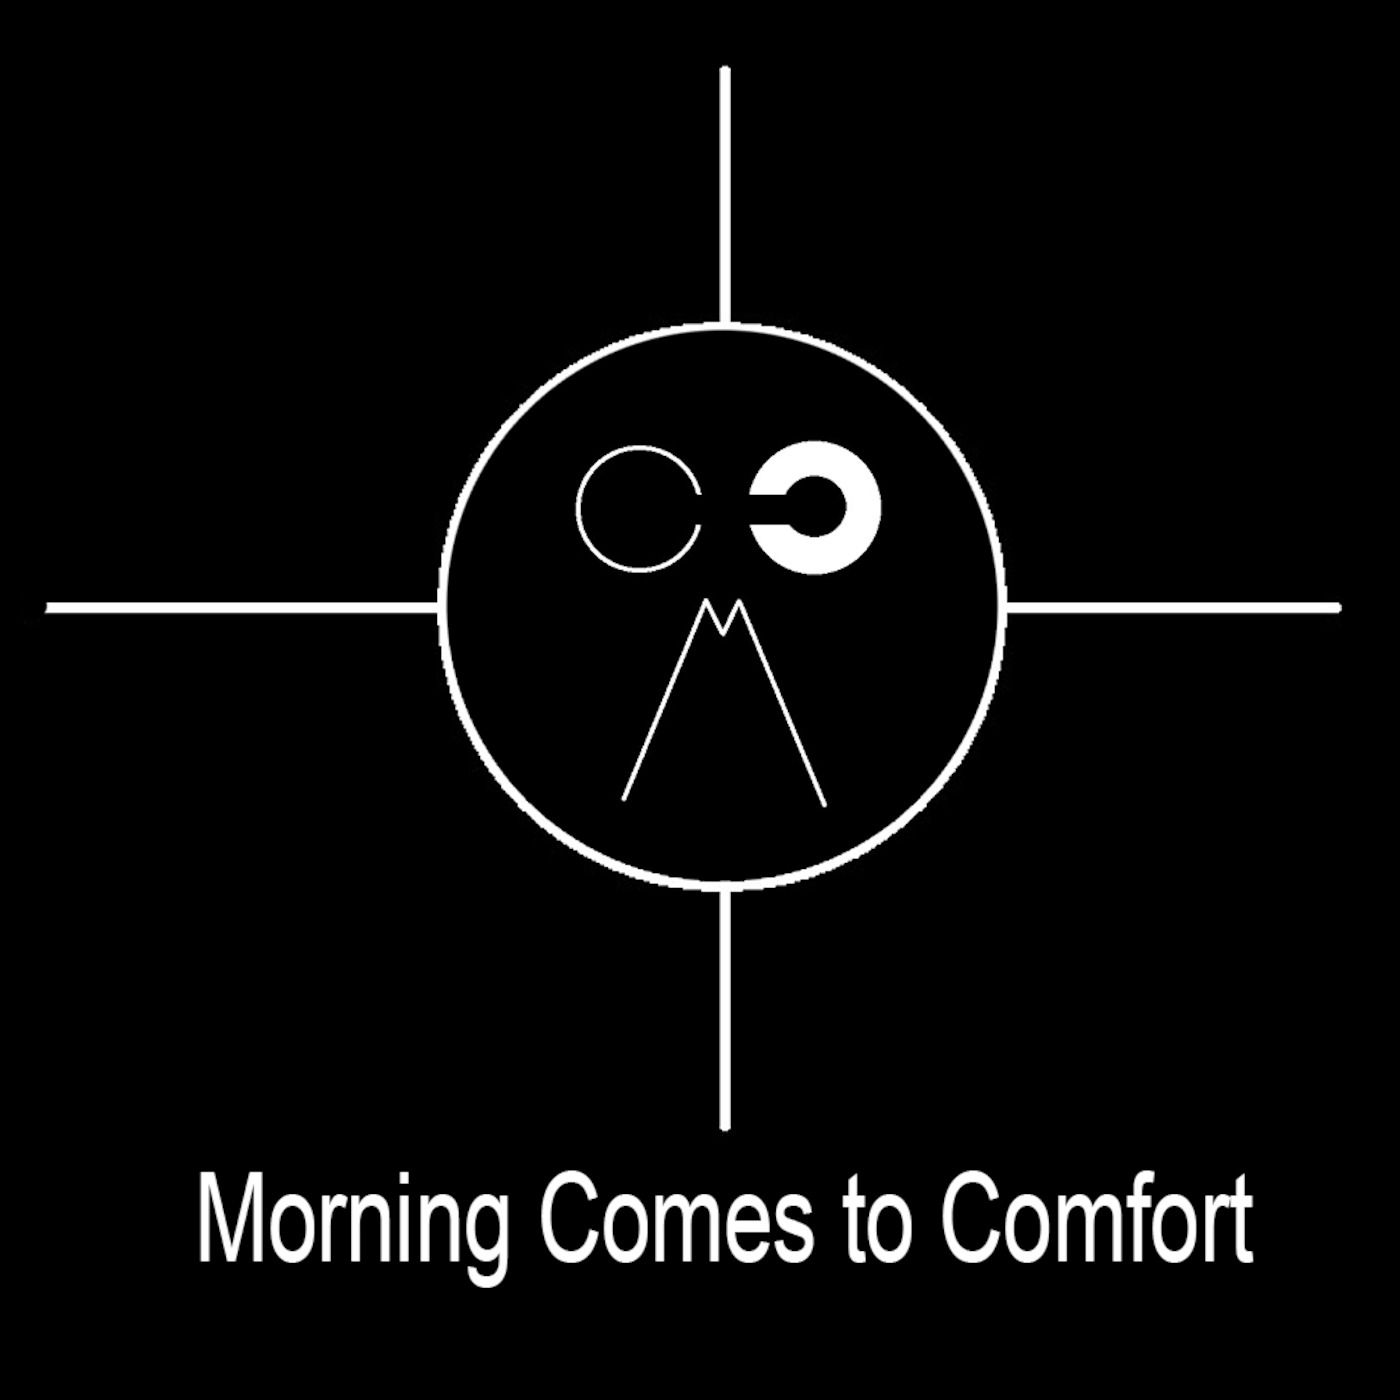 Morning Comes to Comfort